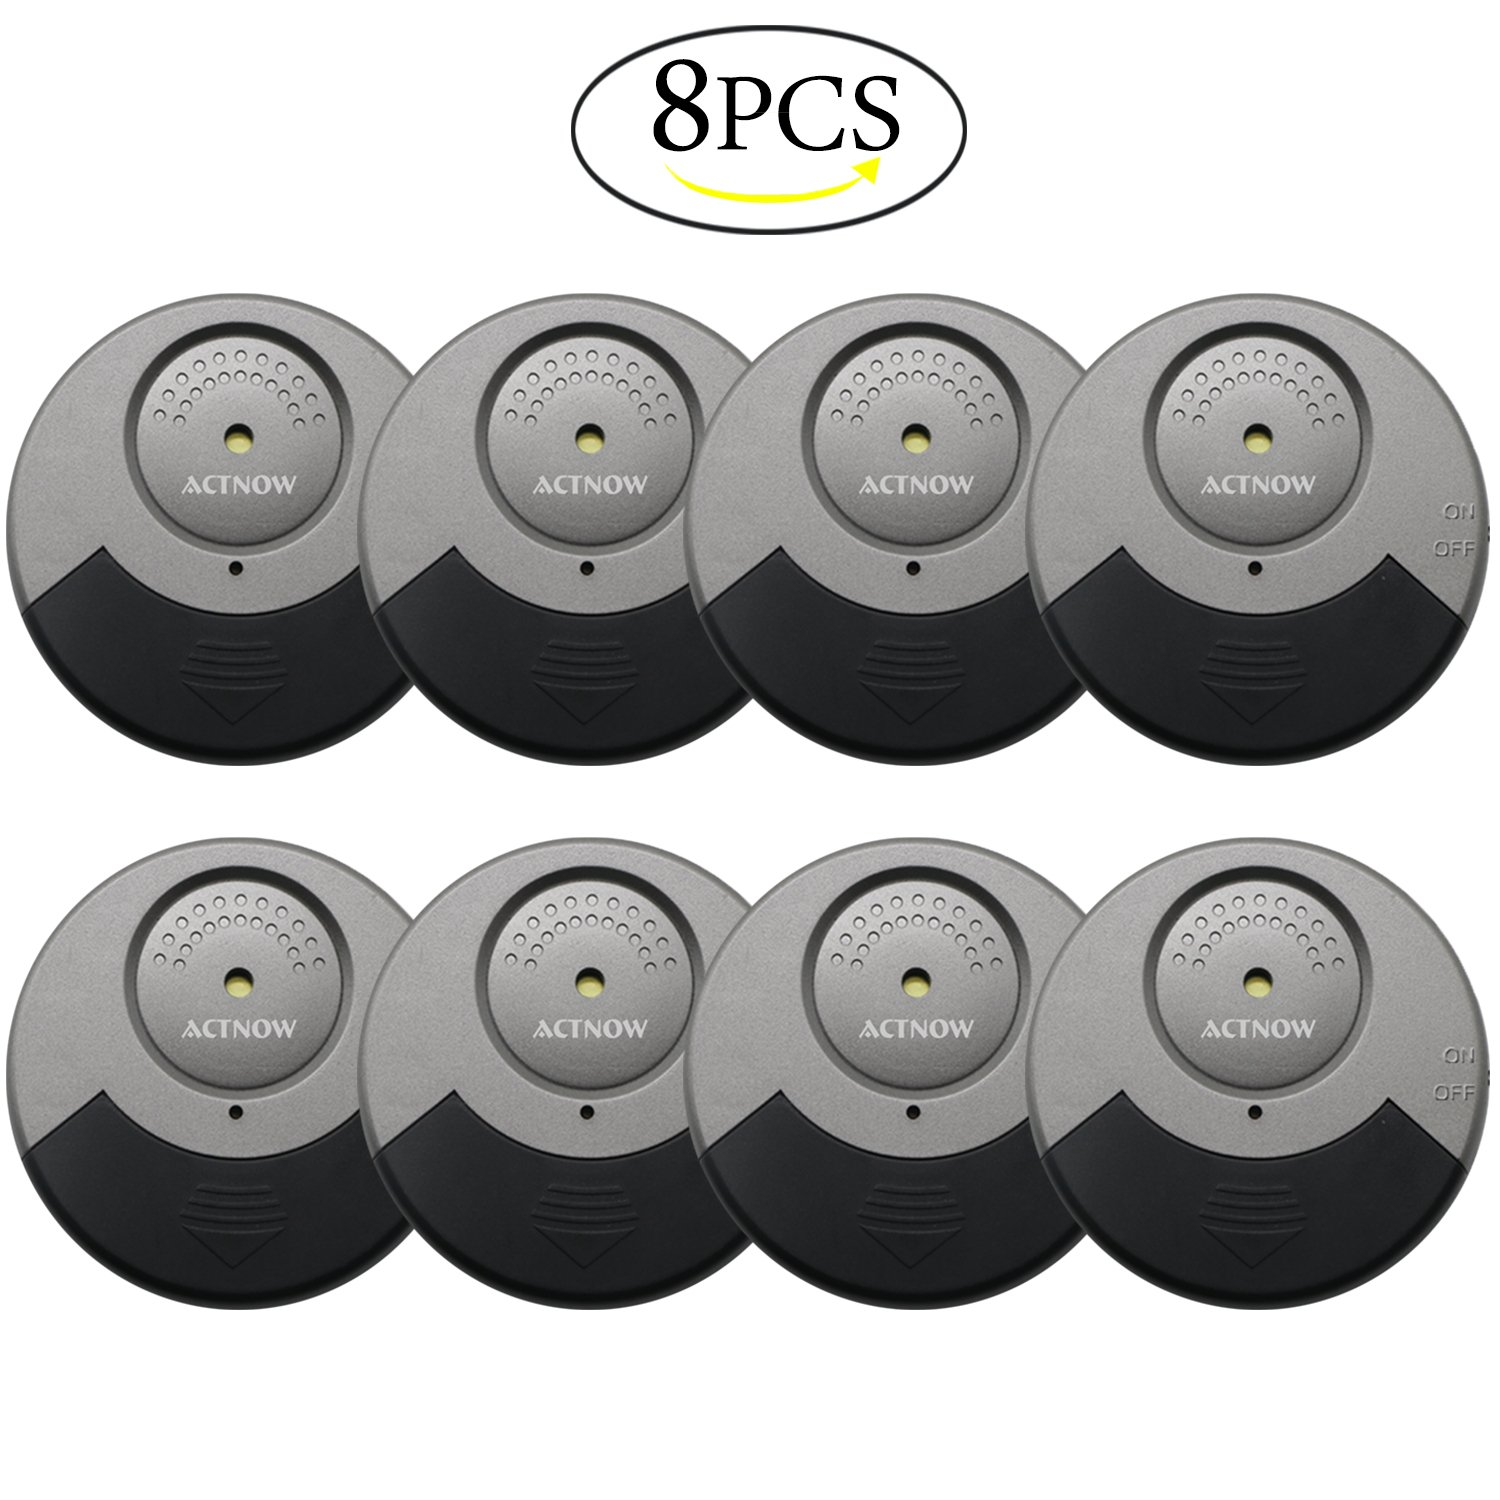 ACTNOW Security Sensor Alarm Black/Grey Ultra-Slim Window Alarm with Loud 100DB Alarm and Vibration Sensors - Modern & Ultra-Thin Design Compatible with Virtually Any Window(8 pack)